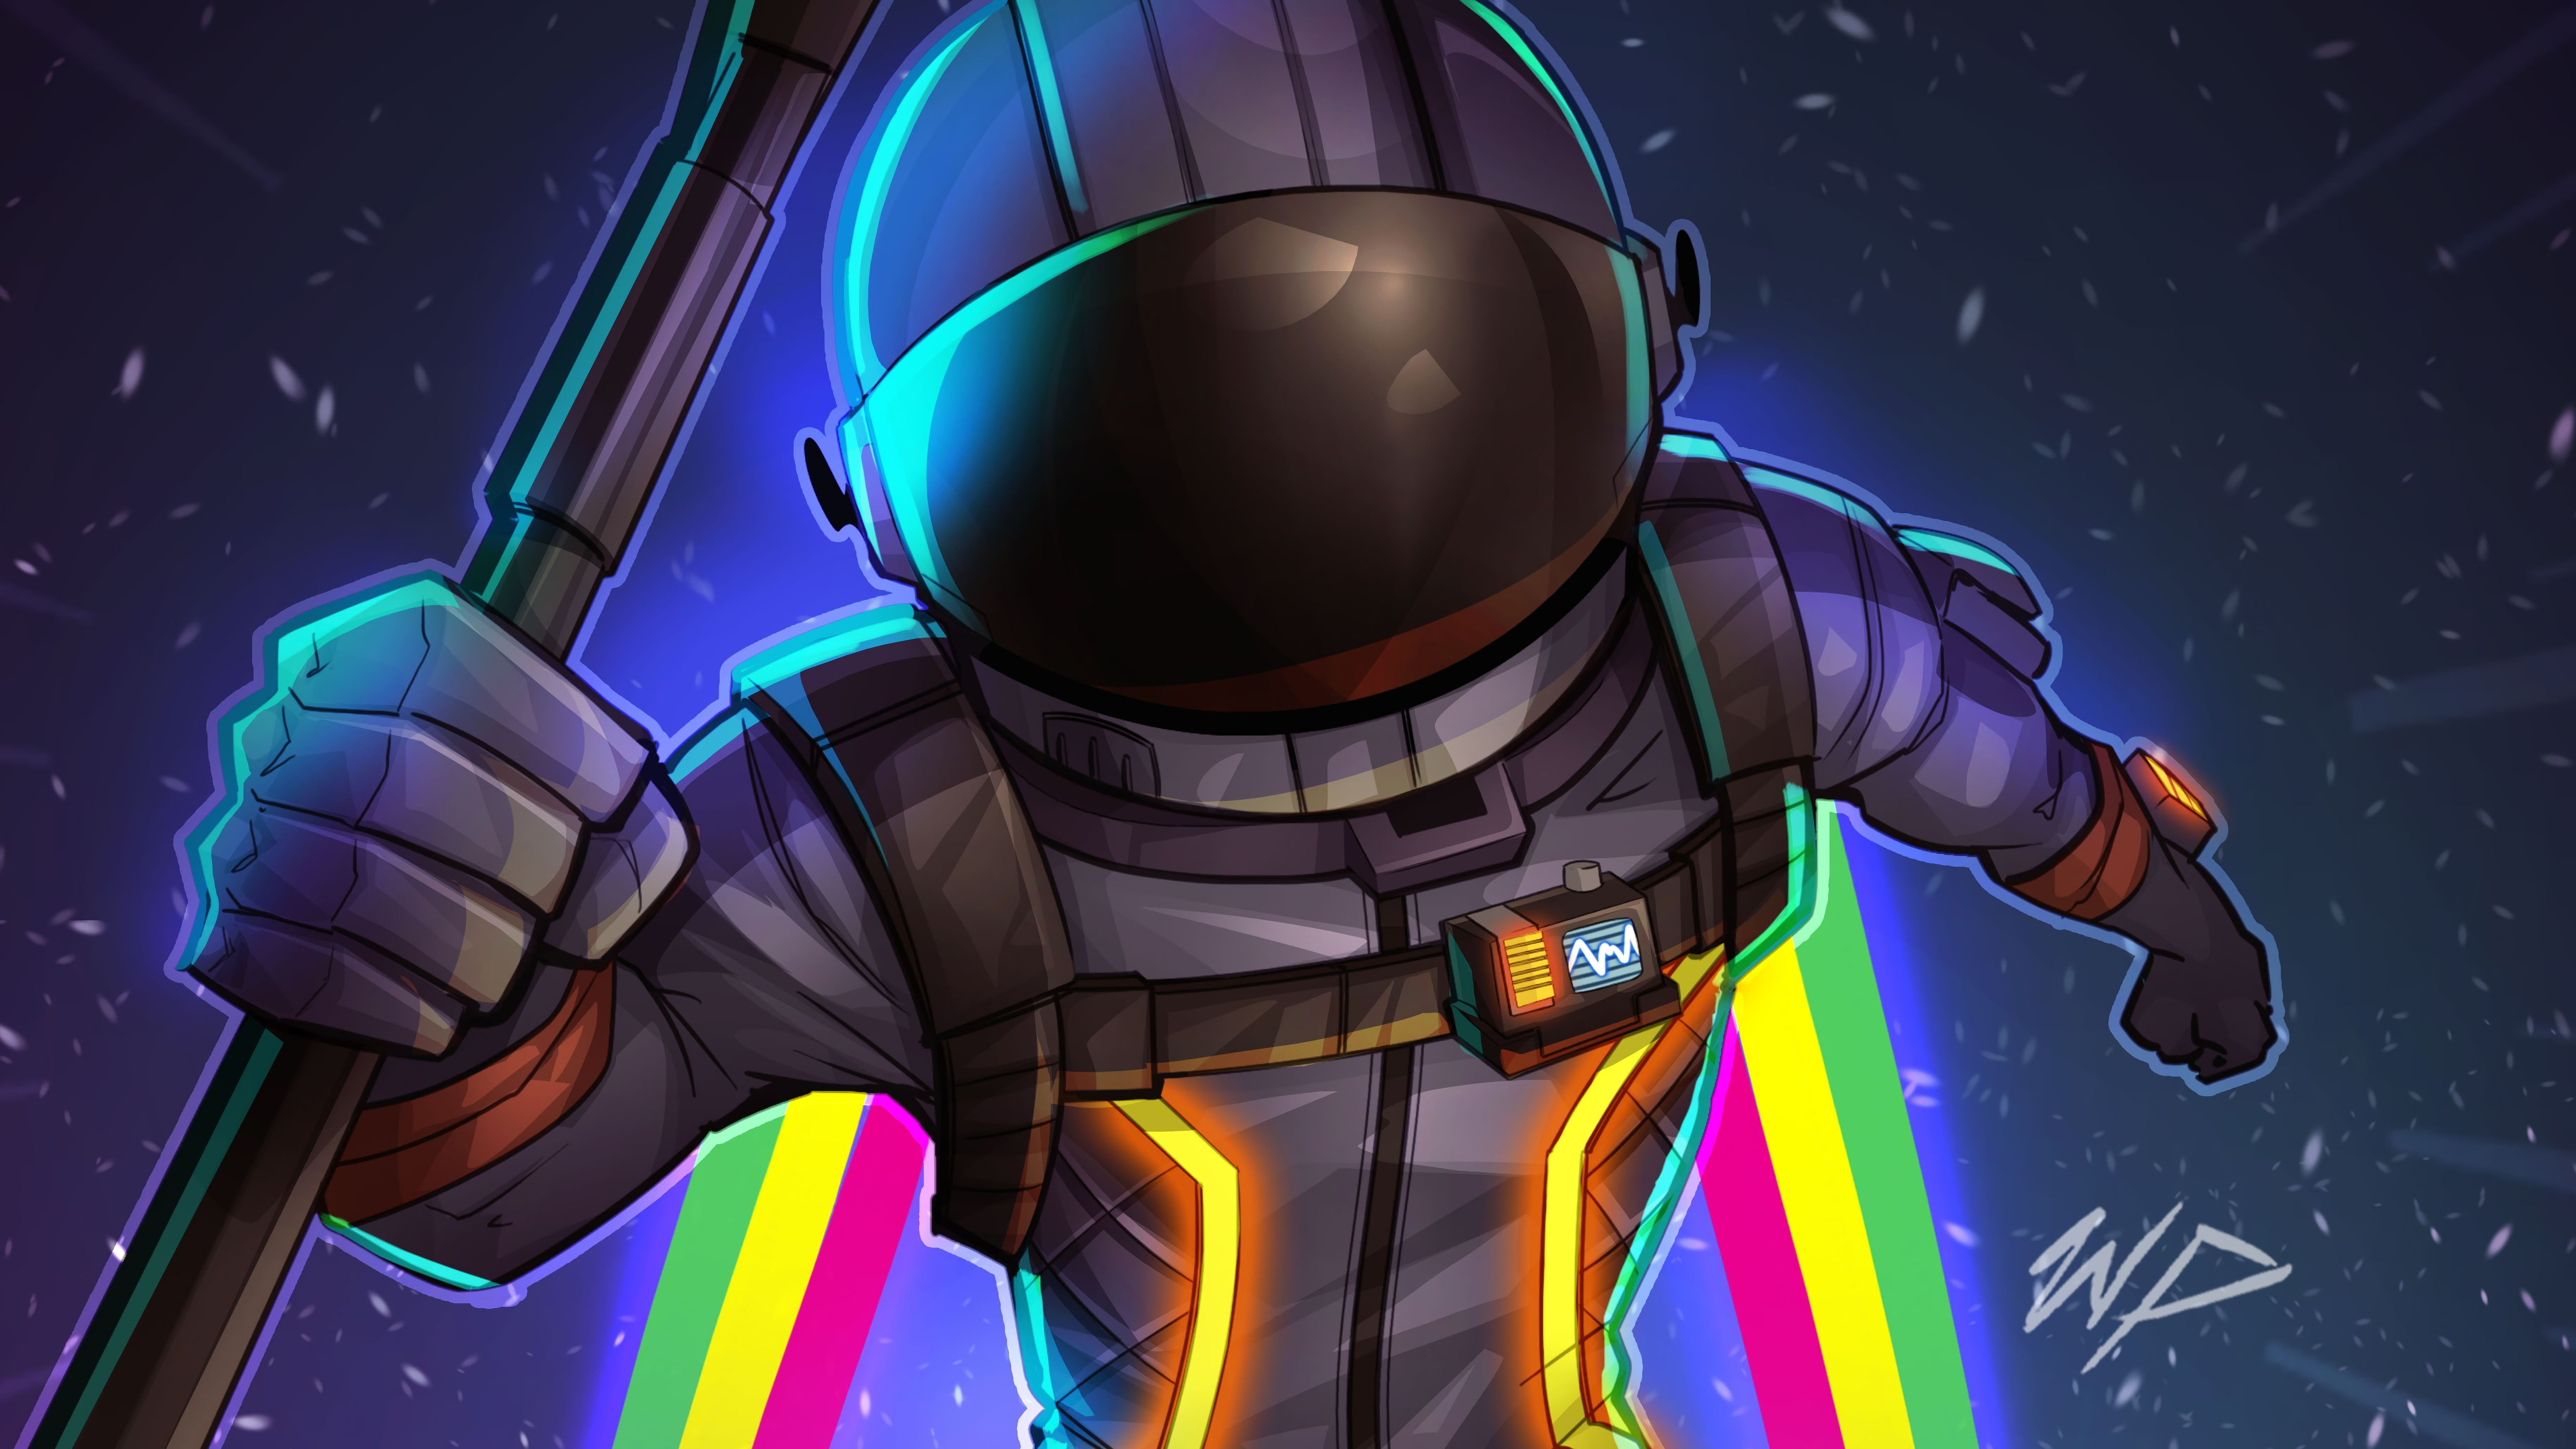 Awesome Astronaut Xd Youtube Art Game Wallpaper Iphone Gaming Wallpapers